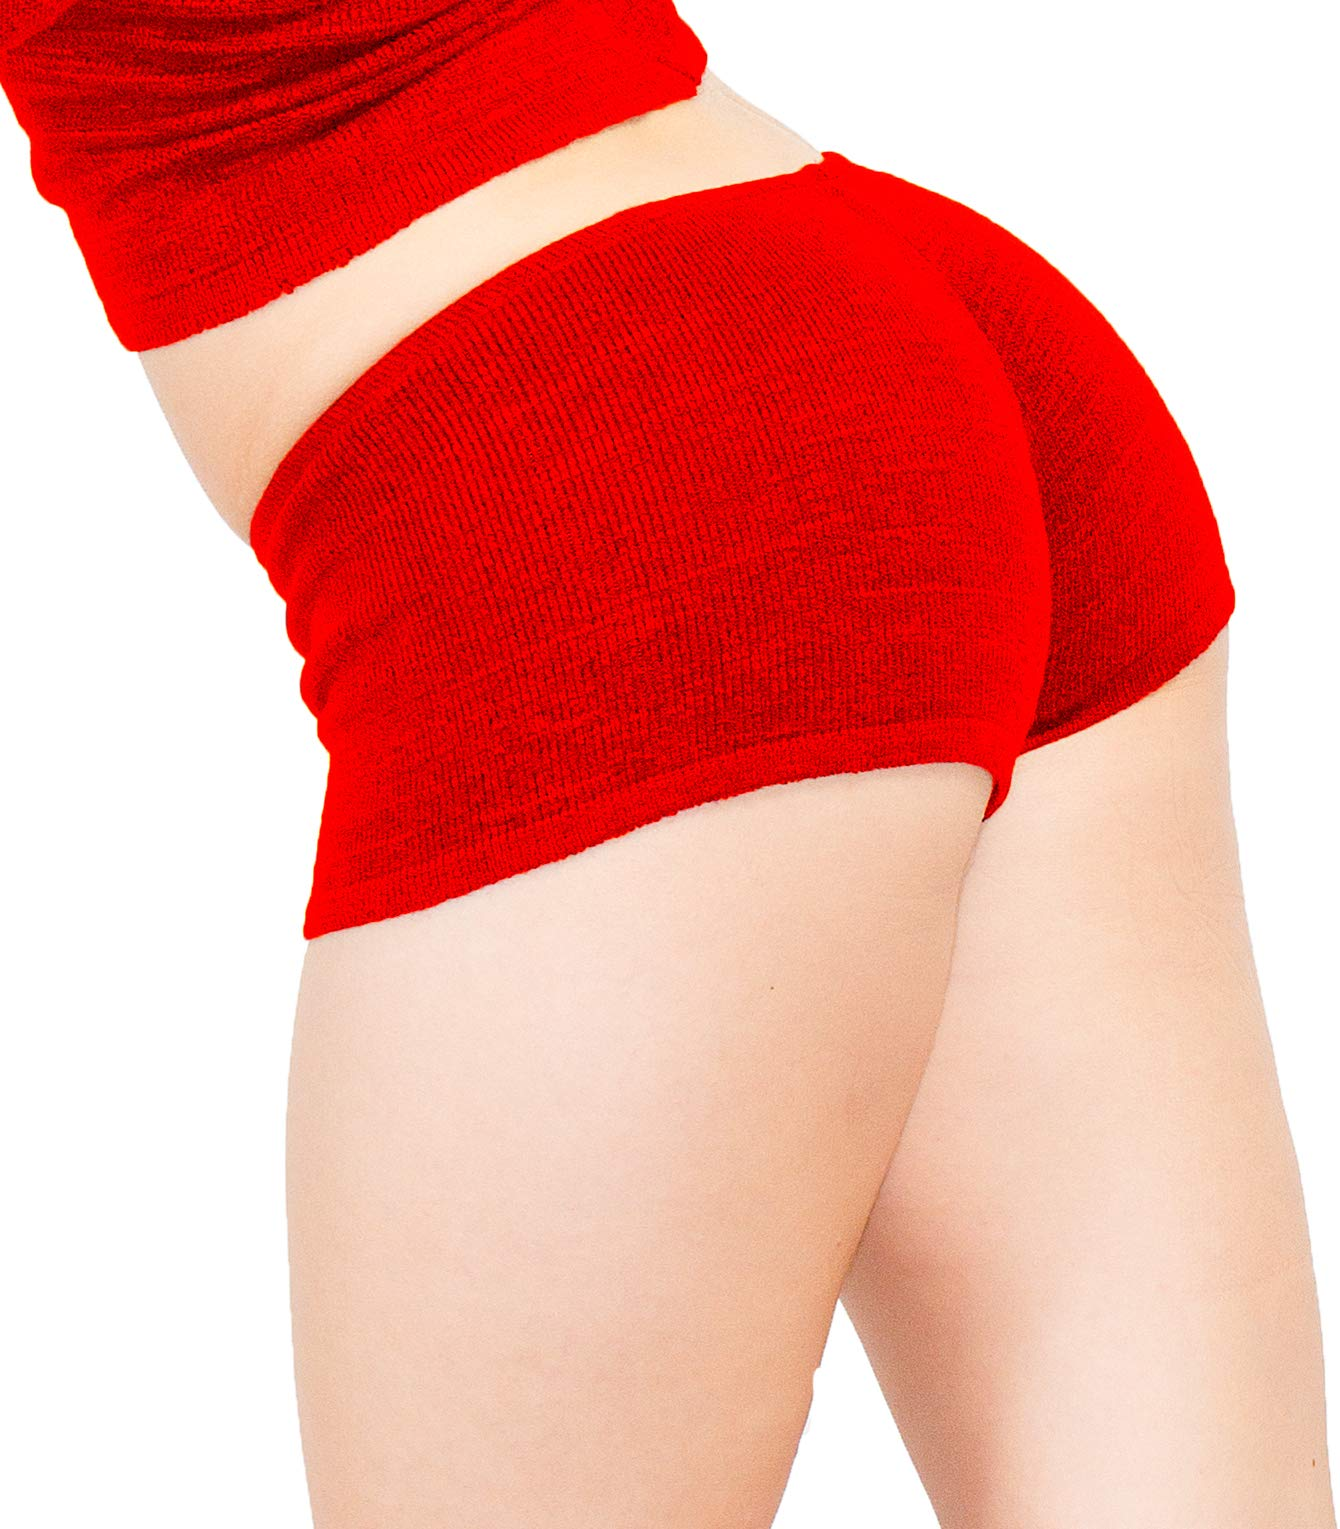 Red Small Sexy Booty Shorts Stretch Knit KD Dance Low Rise Sustainably Manufactured Yoga Gym Zumba Twerk Made in USA